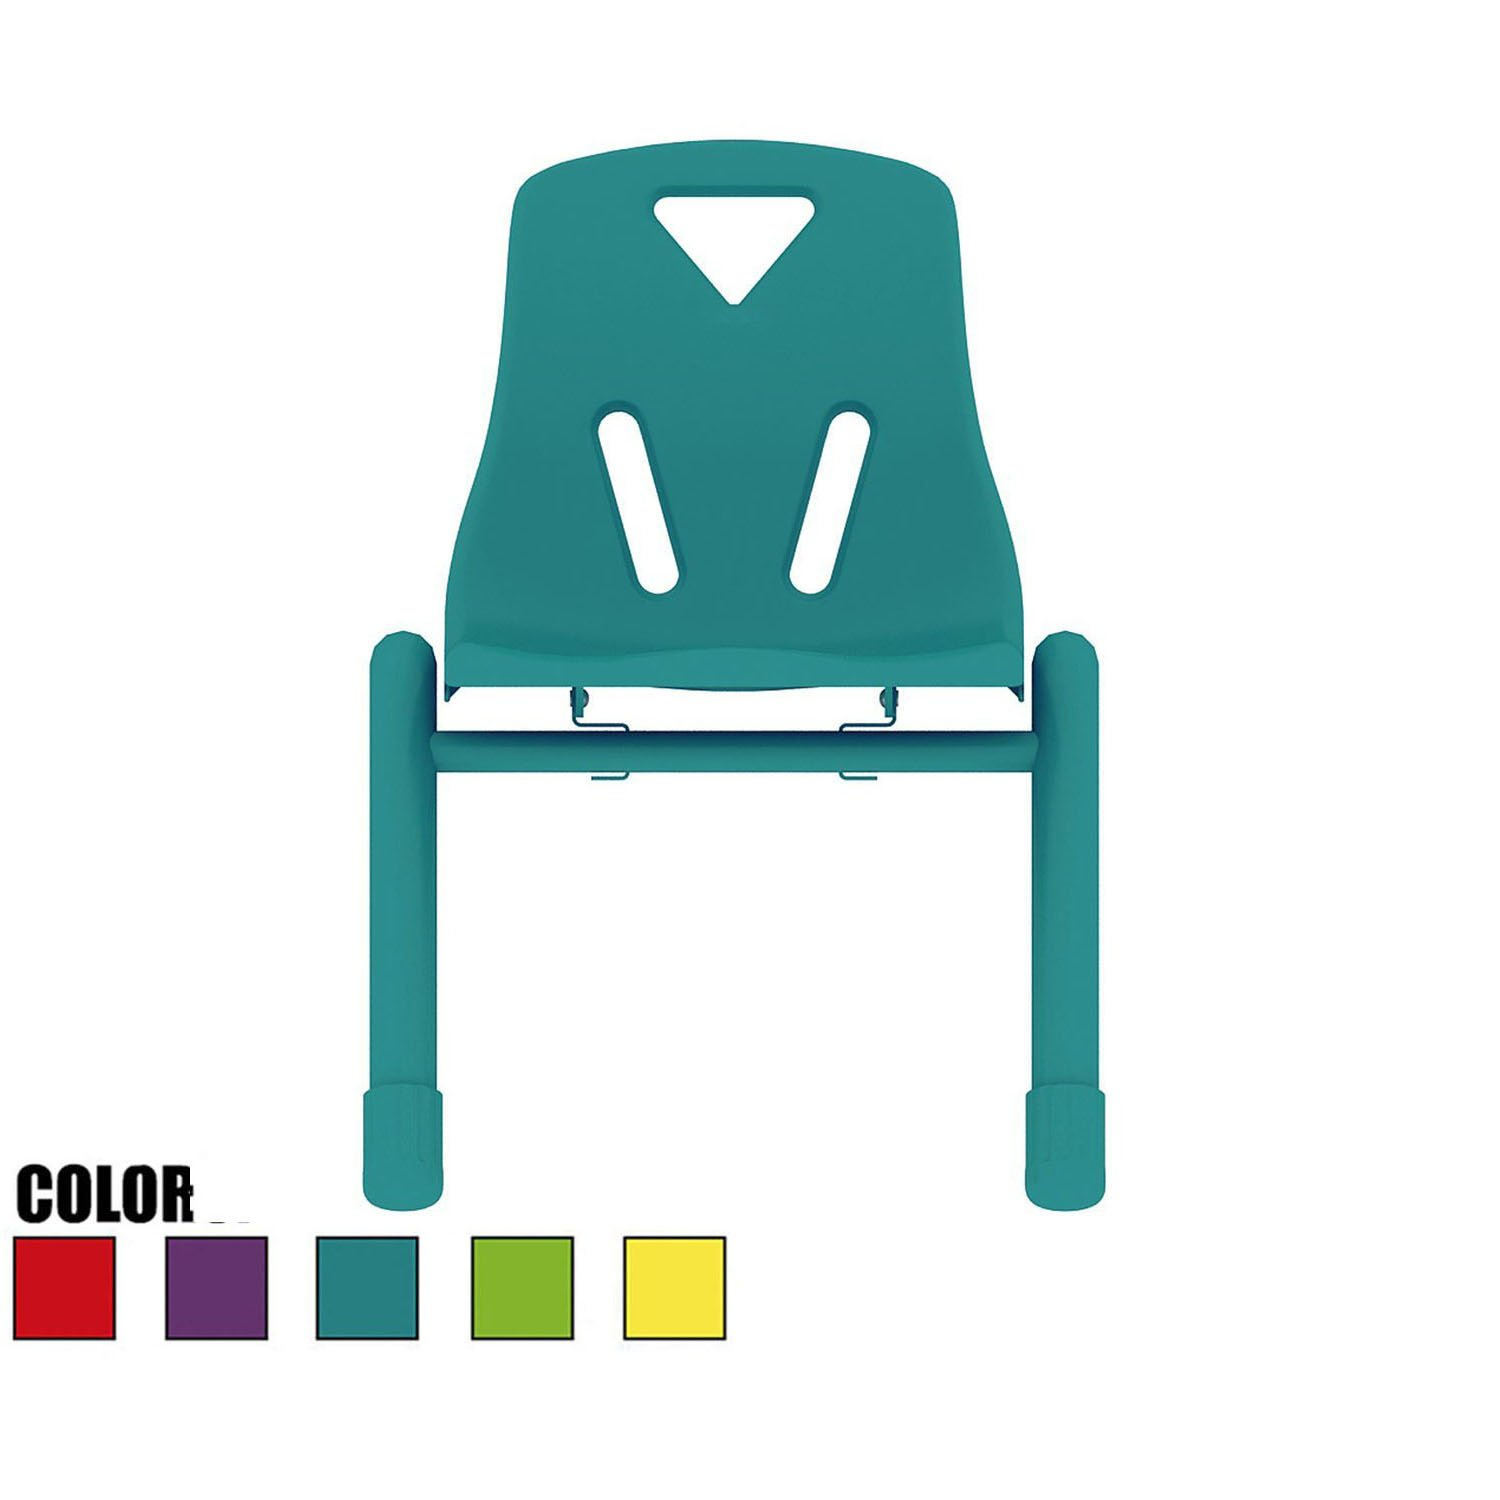 2xhome - Teal - Kids Size Plastic Side Chair 12'' Seat Height Teal Childs Chair Childrens Room School Chairs No Arm Arms Armless Molded Plastic Seat with Coated Metal Legs Stackable